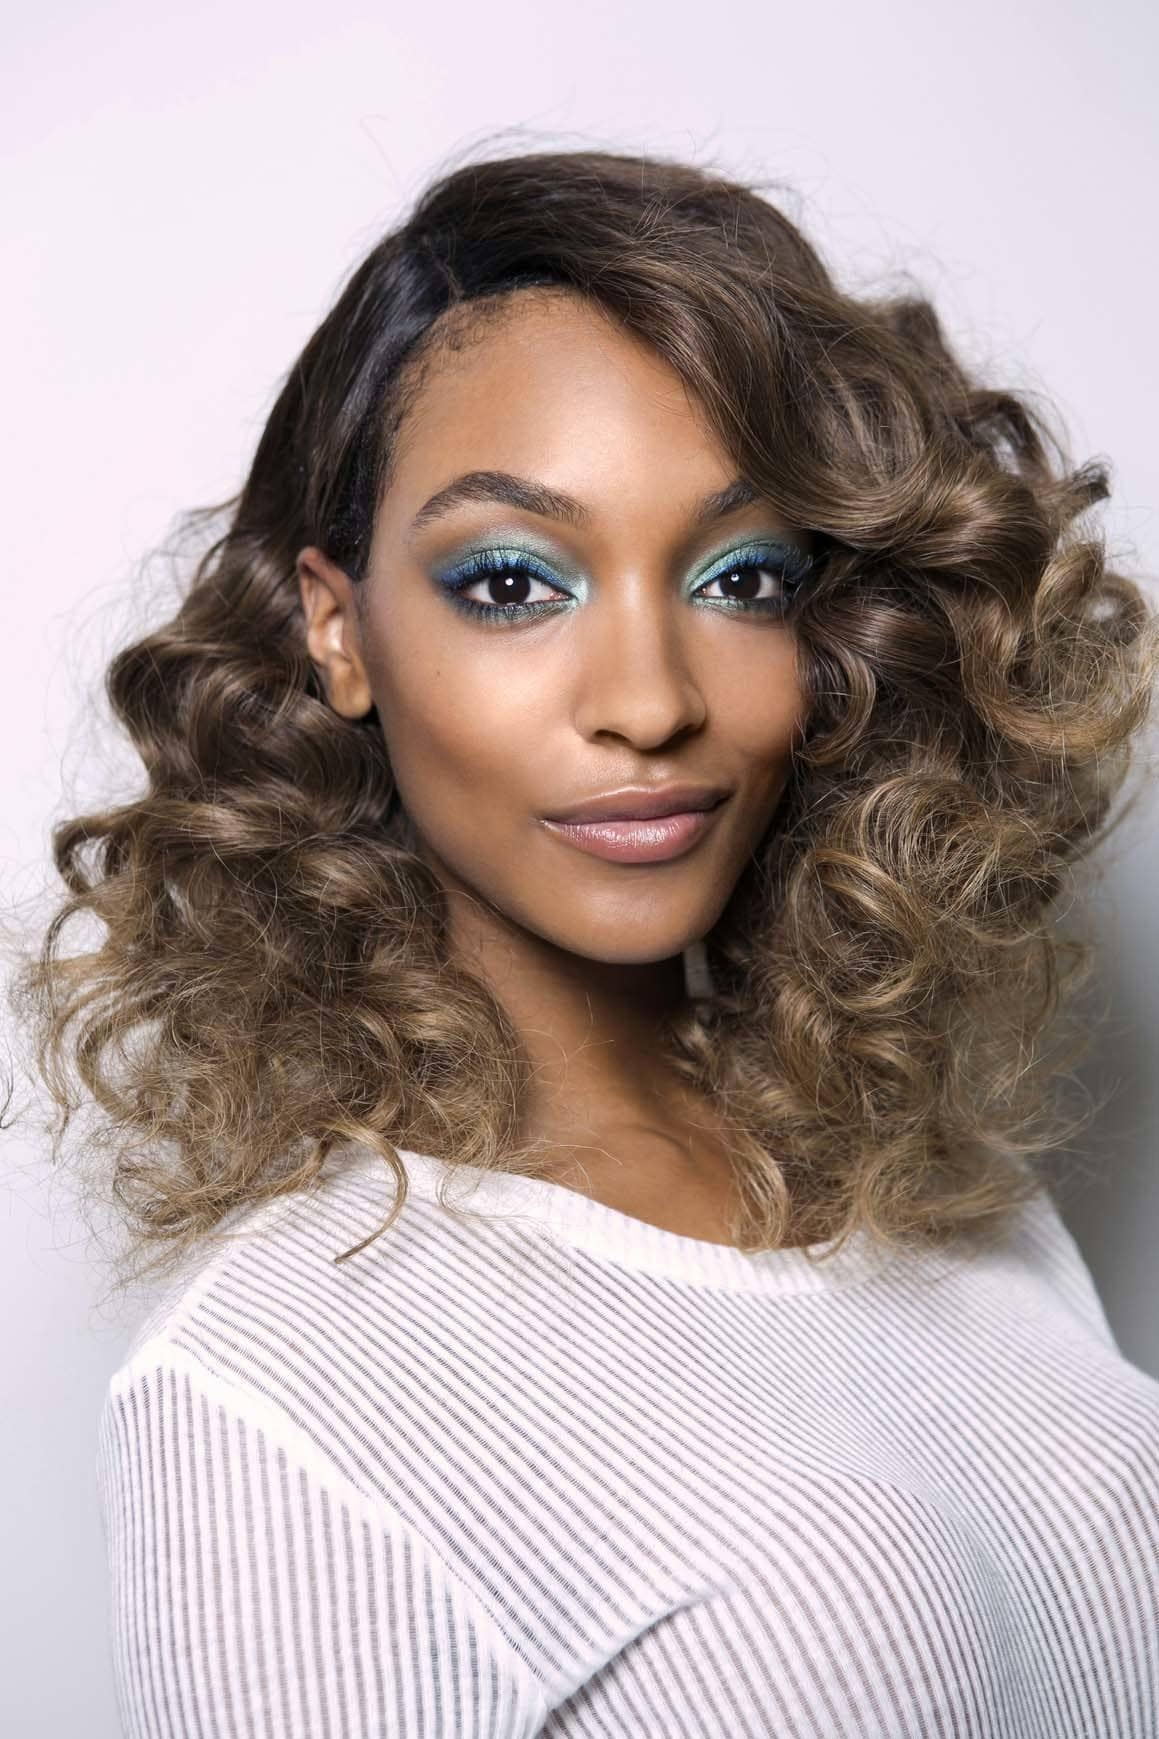 Model Jourdan Dunn backstage at fashion show with curly ombre hair what is a weave